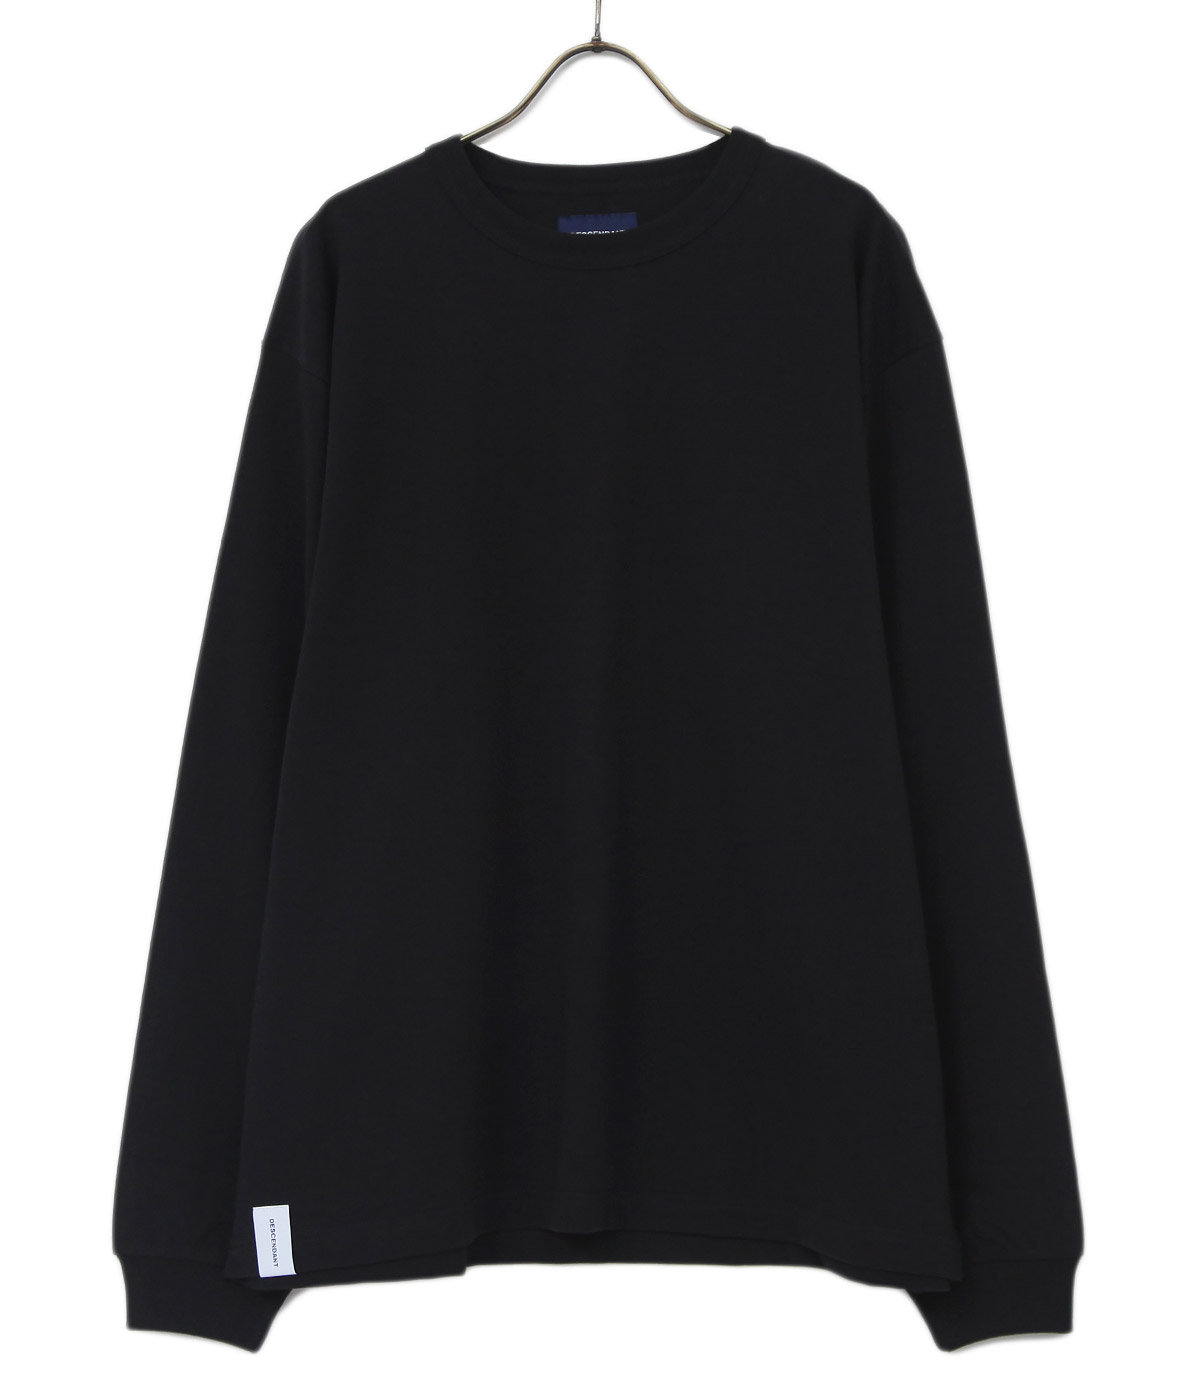 CREW NECK LS FULL SIZE